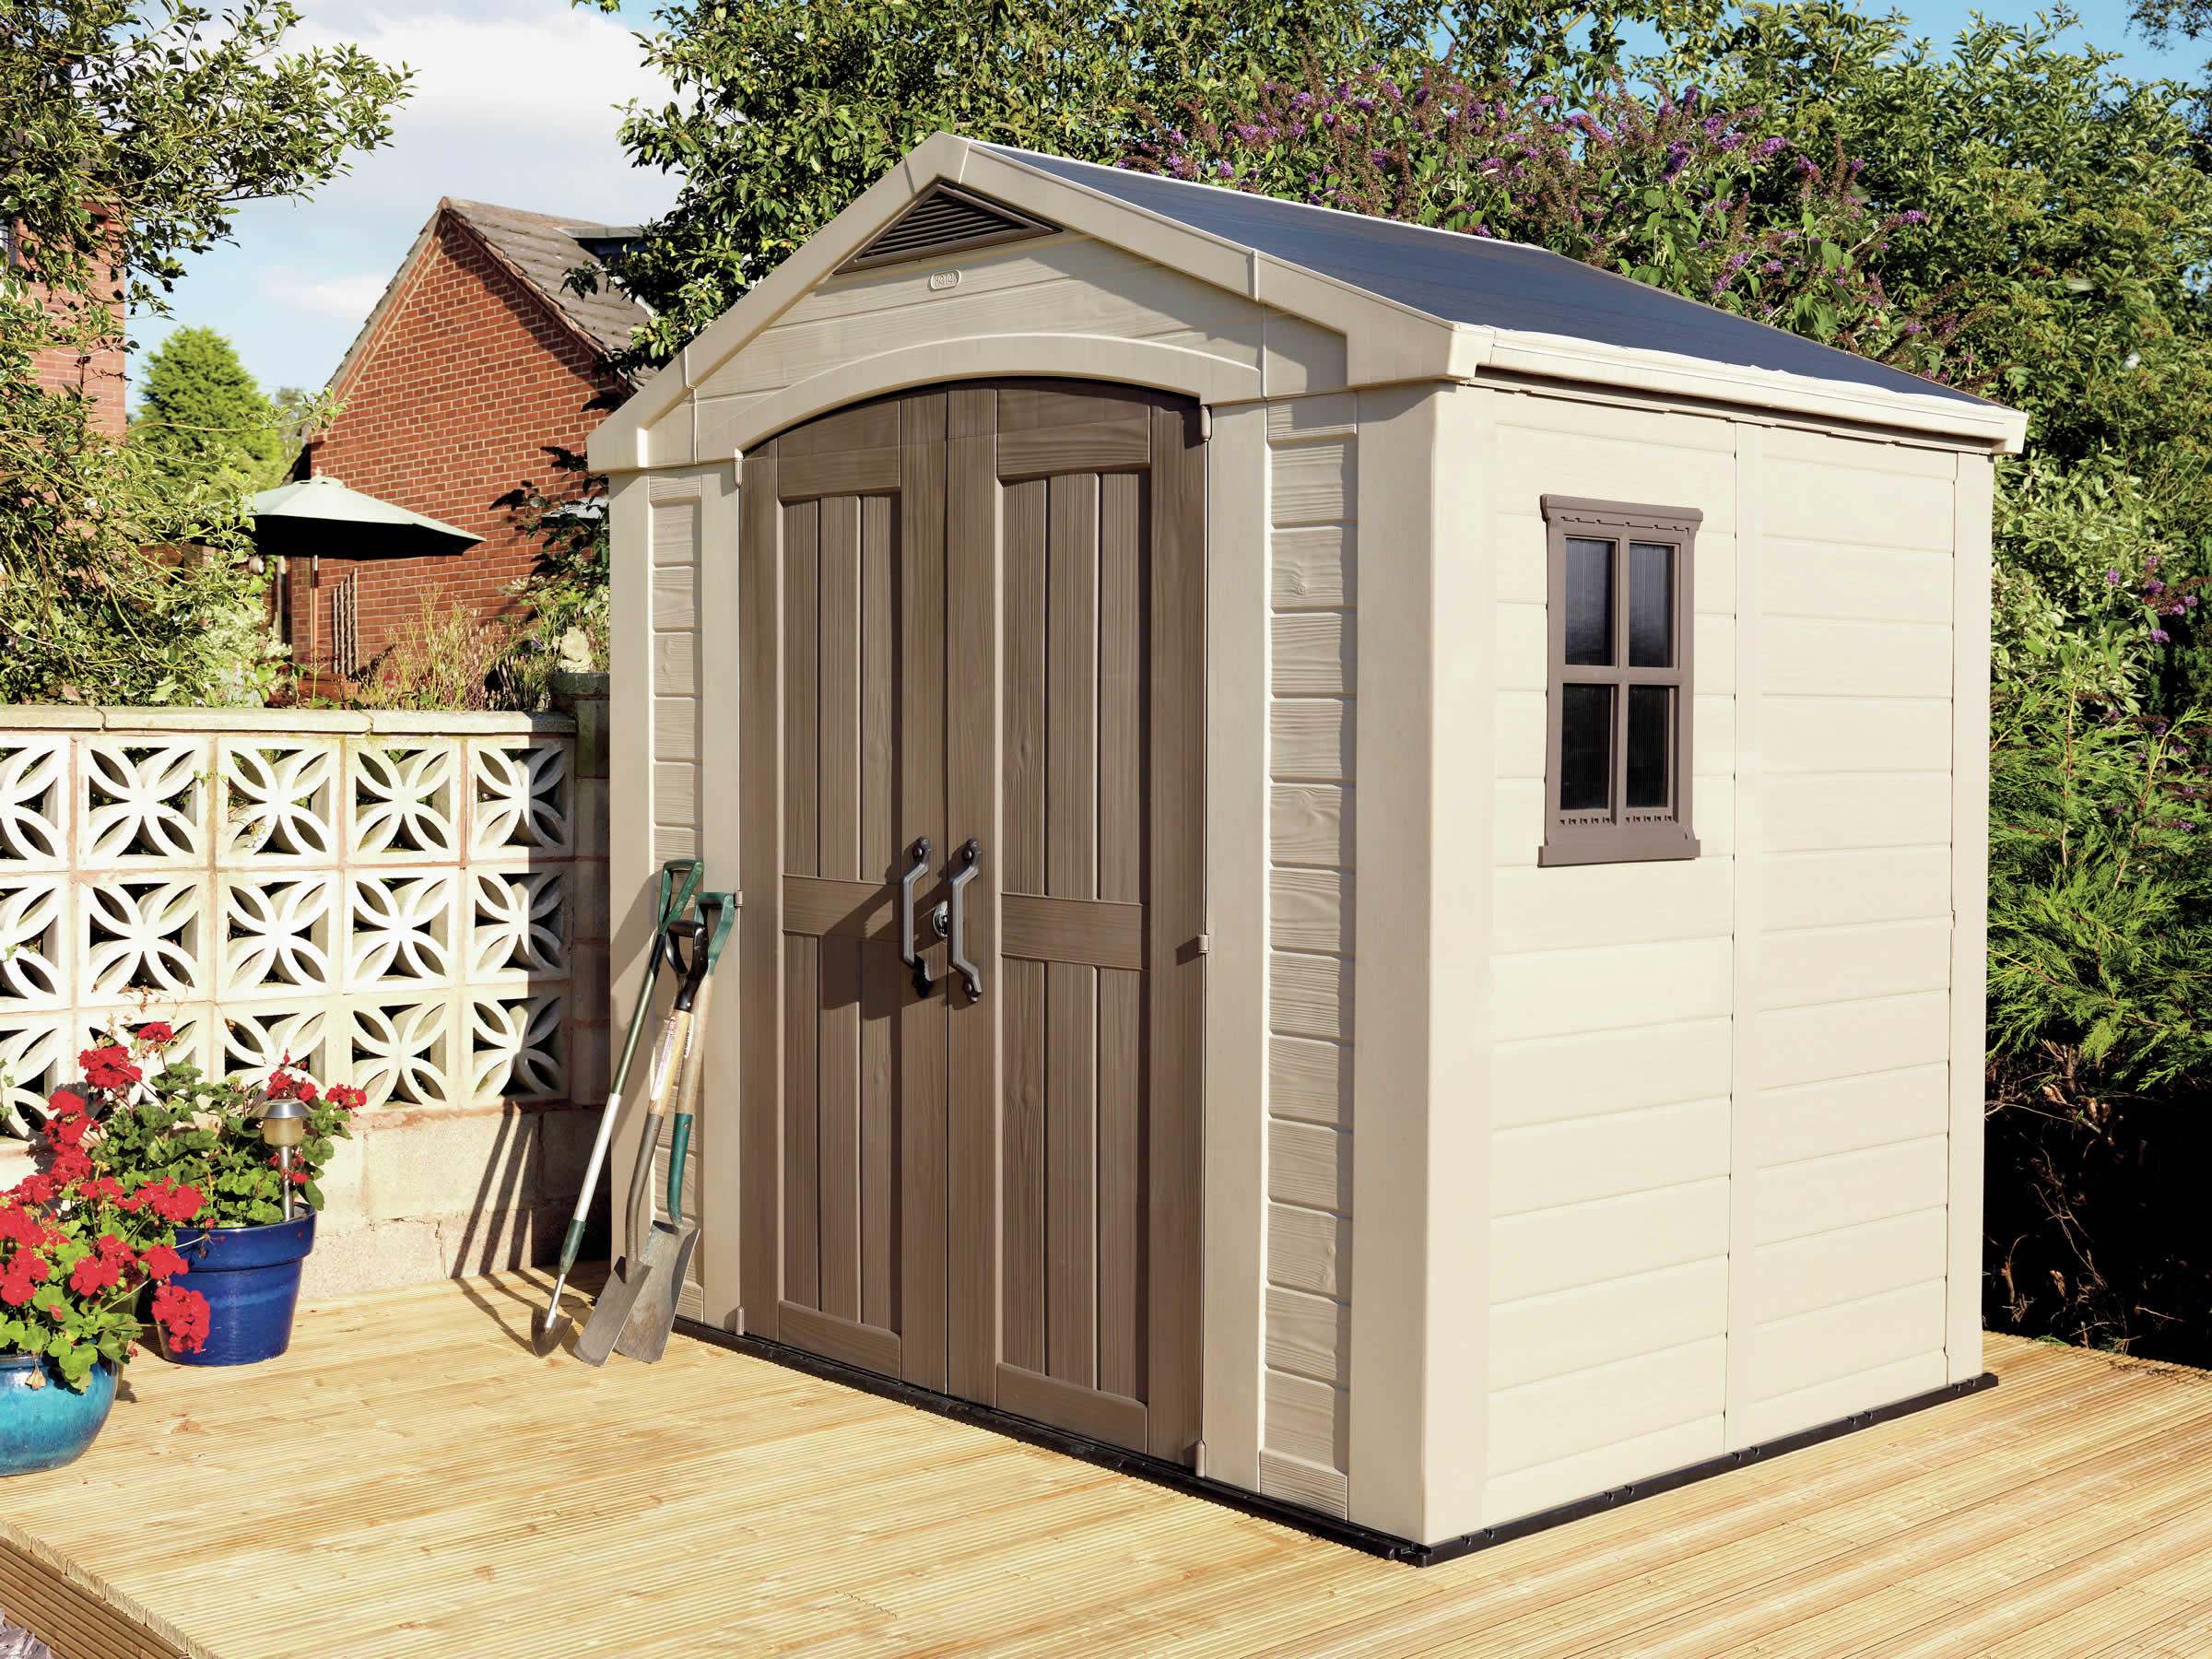 Epr retail news homebase shed for Sheds storage buildings